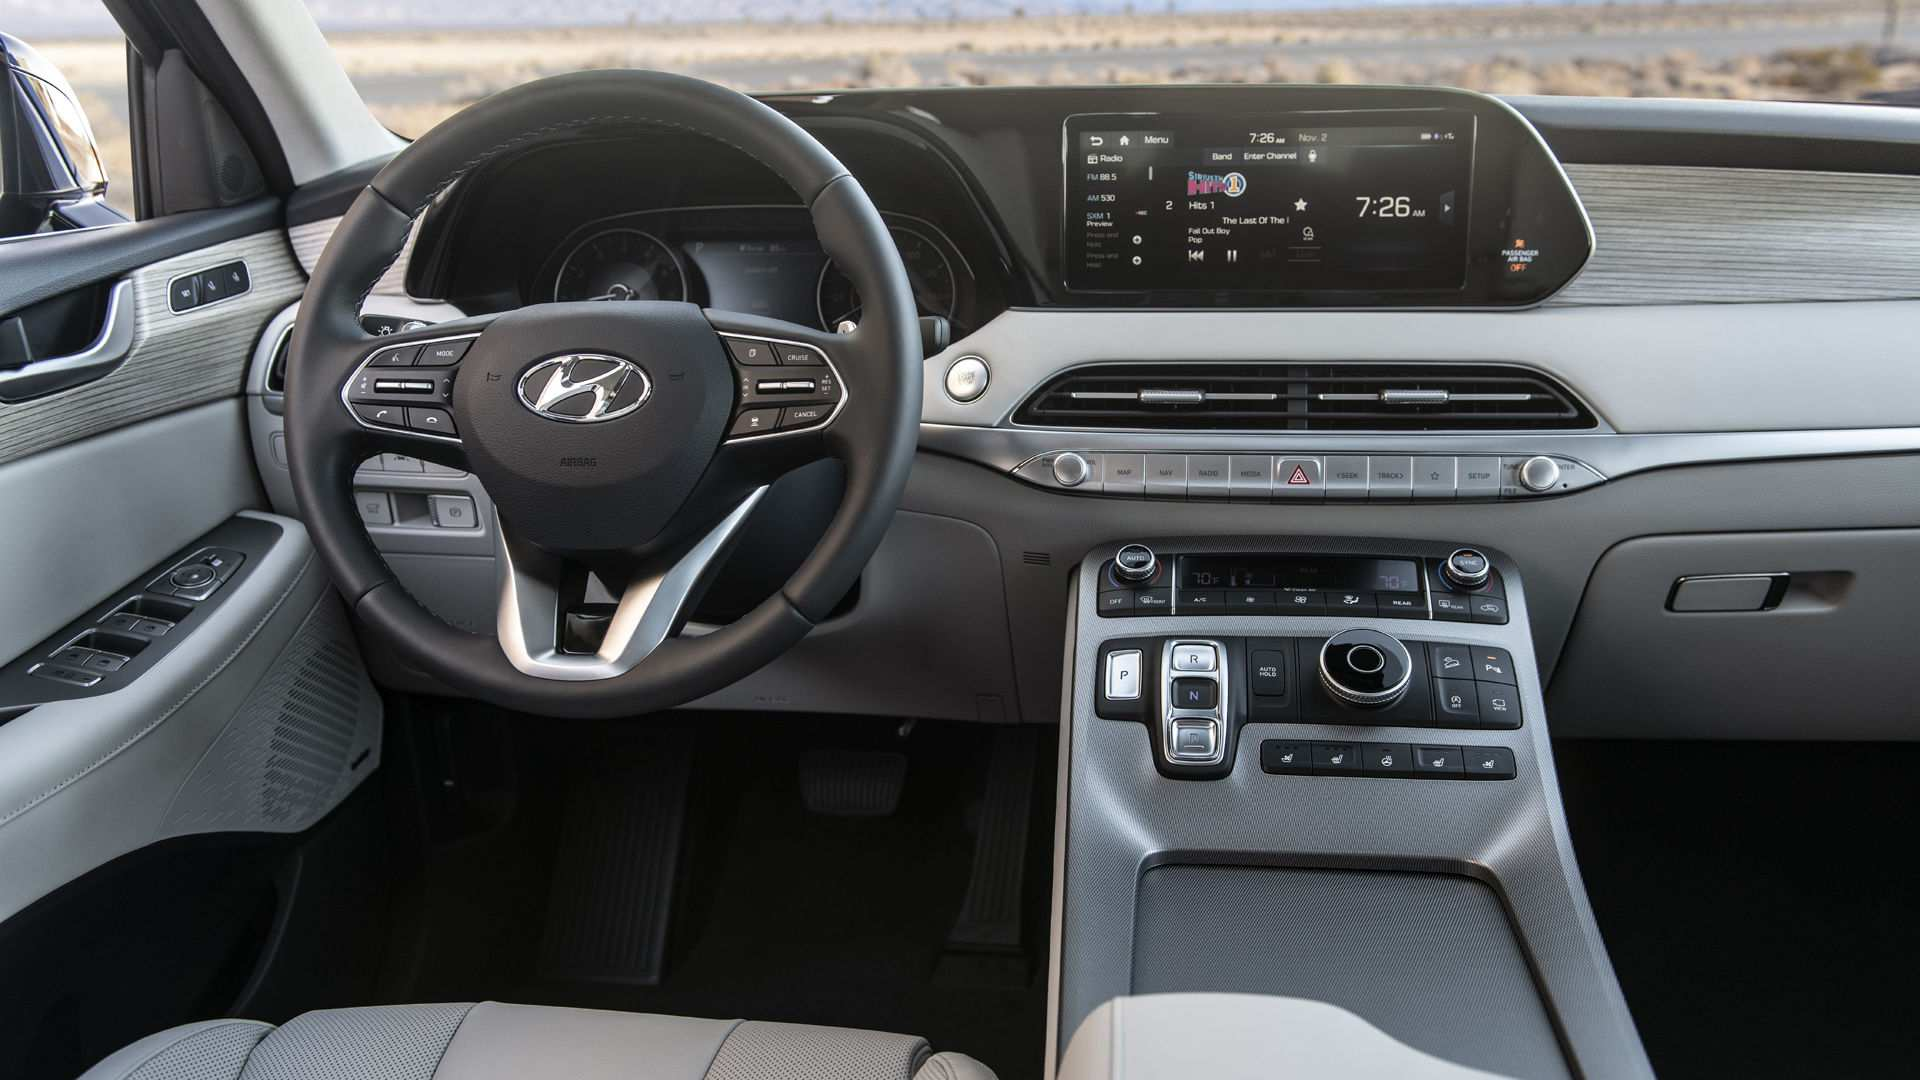 27 Gallery of Hyundai Palisade 2020 Interior Overview by Hyundai Palisade 2020 Interior